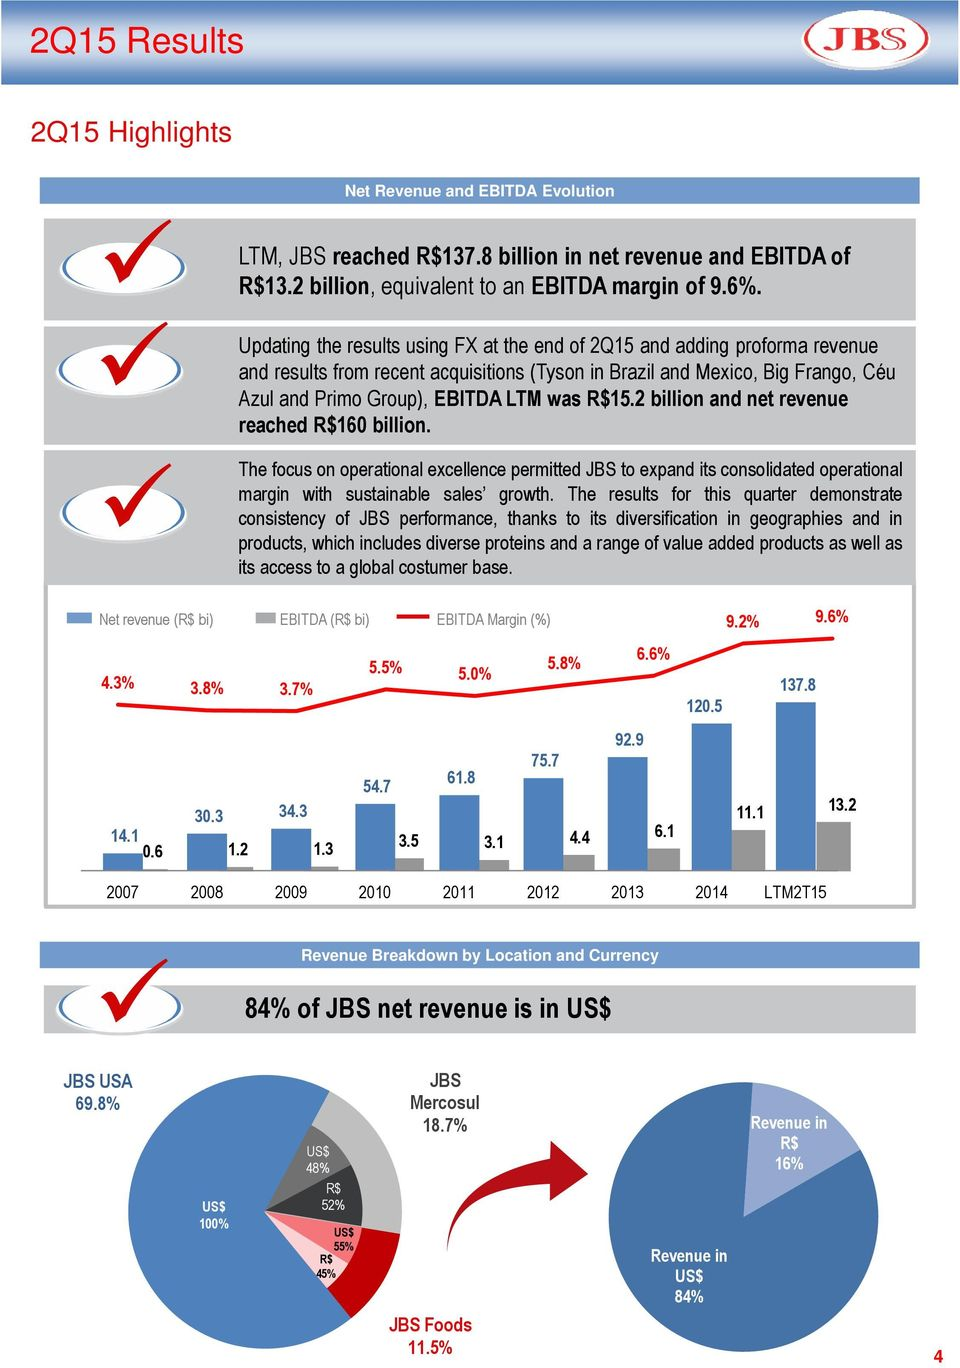 2 billion and net revenue reached R$160 billion. The focus on operational excellence permitted JBS to expand its consolidated operational margin with sustainable sales growth.